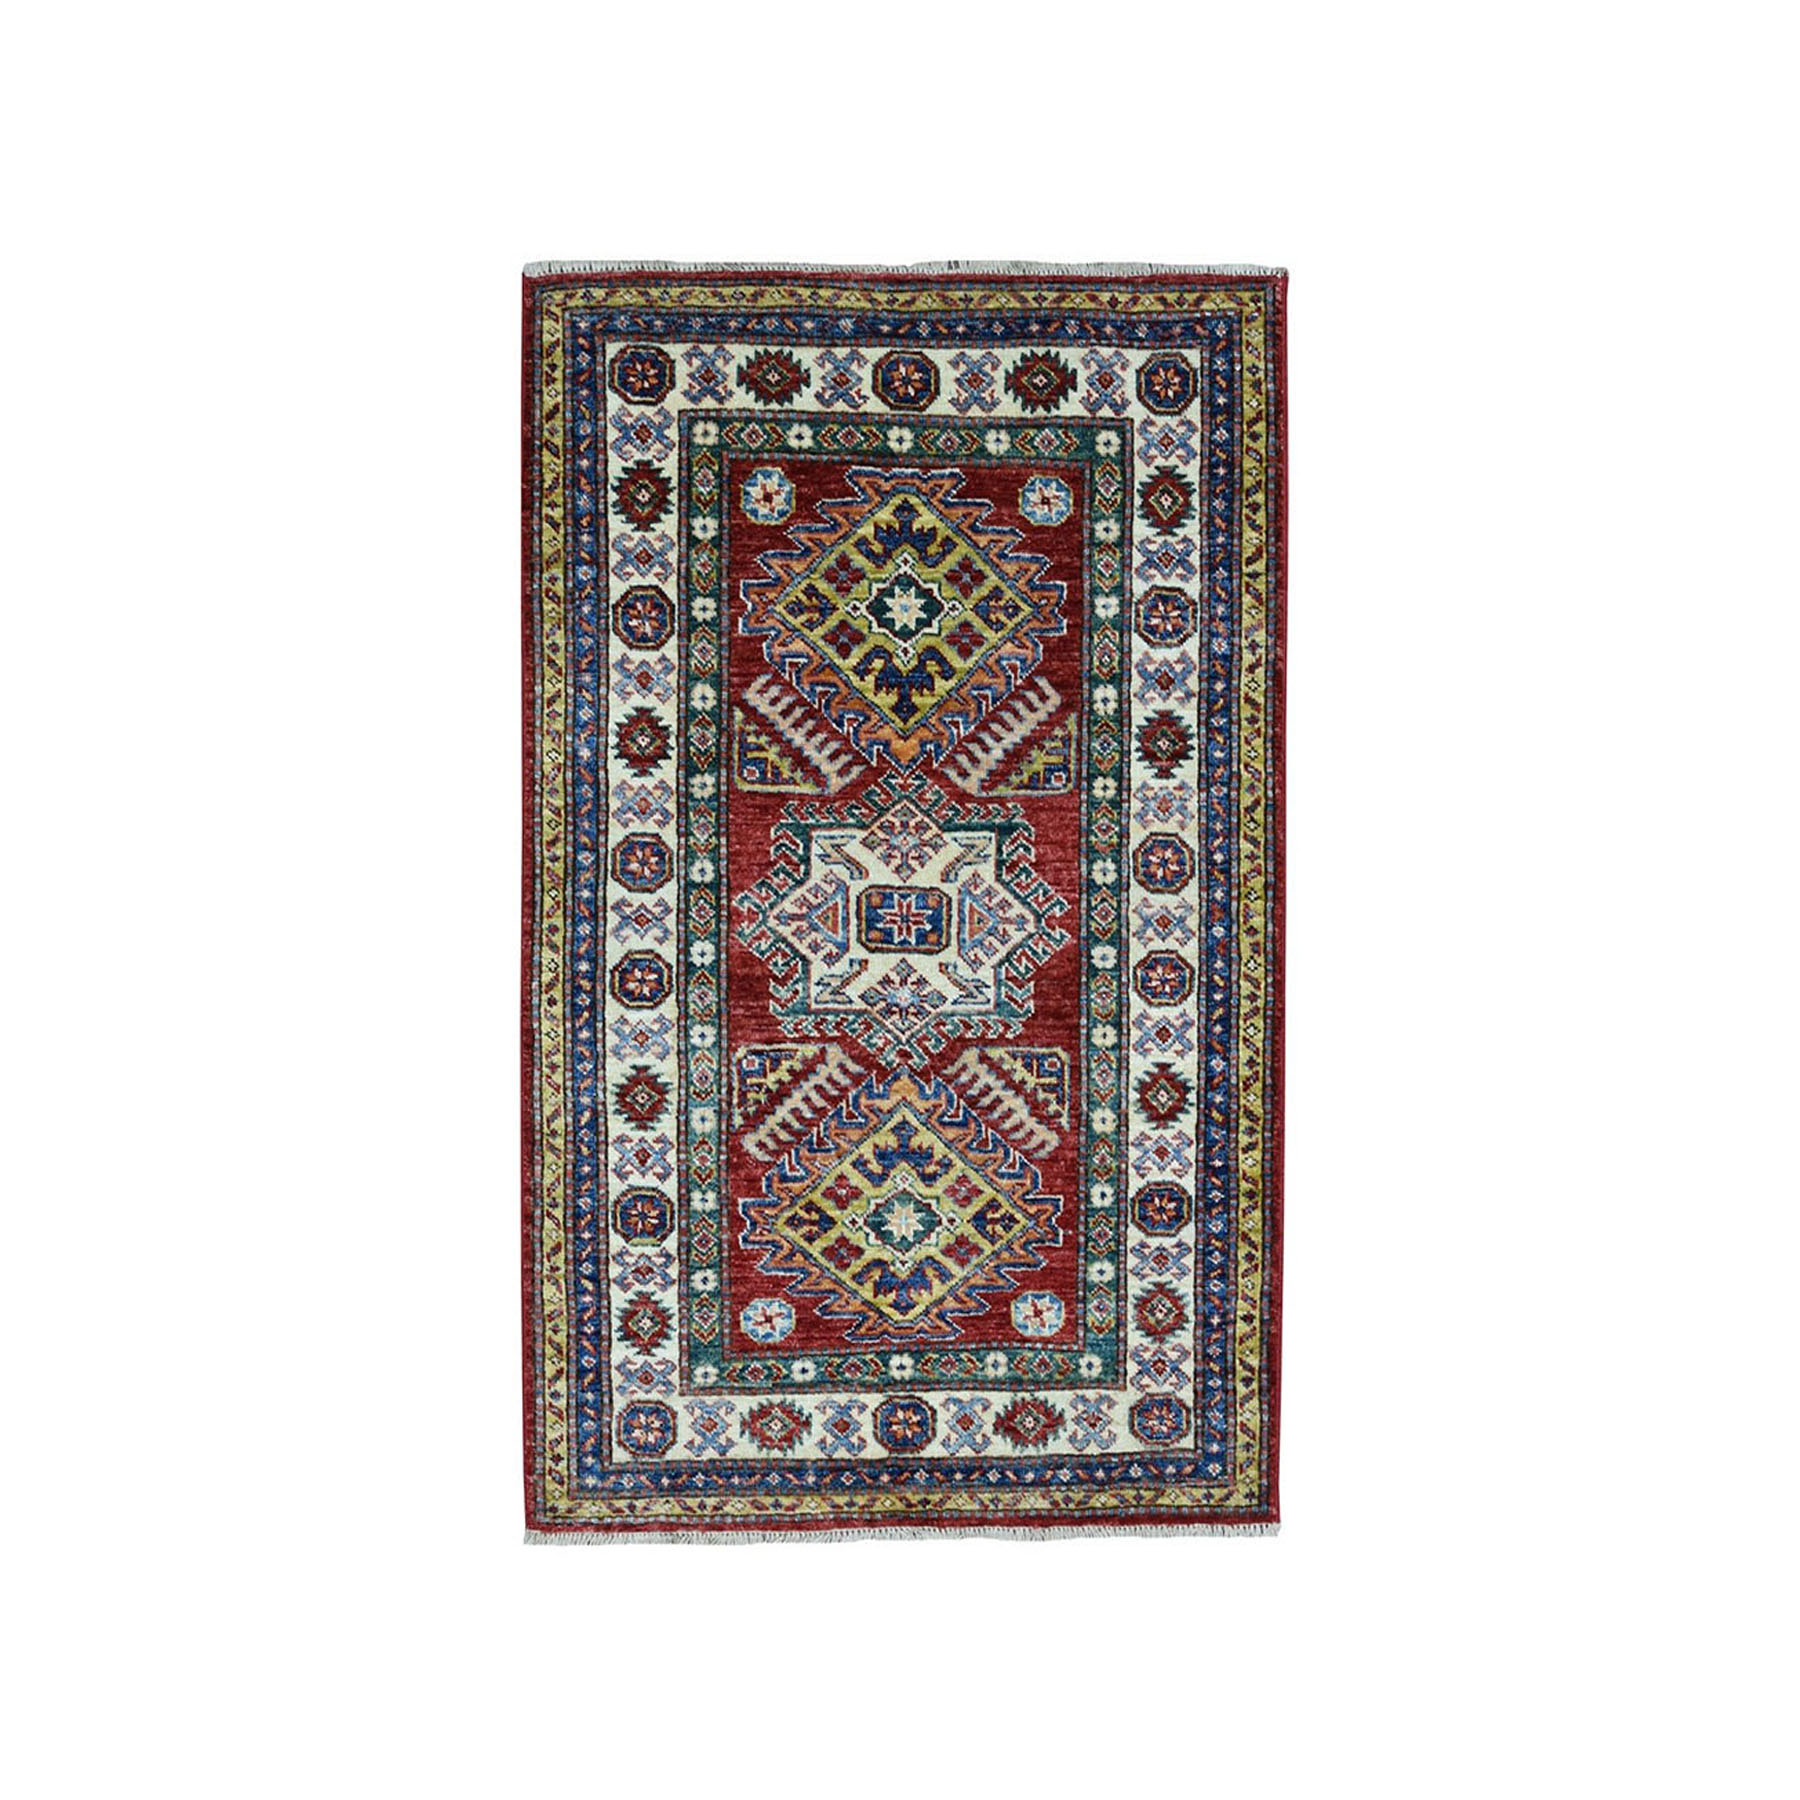 3'X4' Red Super Kazak Pure Wool Geometric Design Hand-Knotted Oriental Rug moaea080